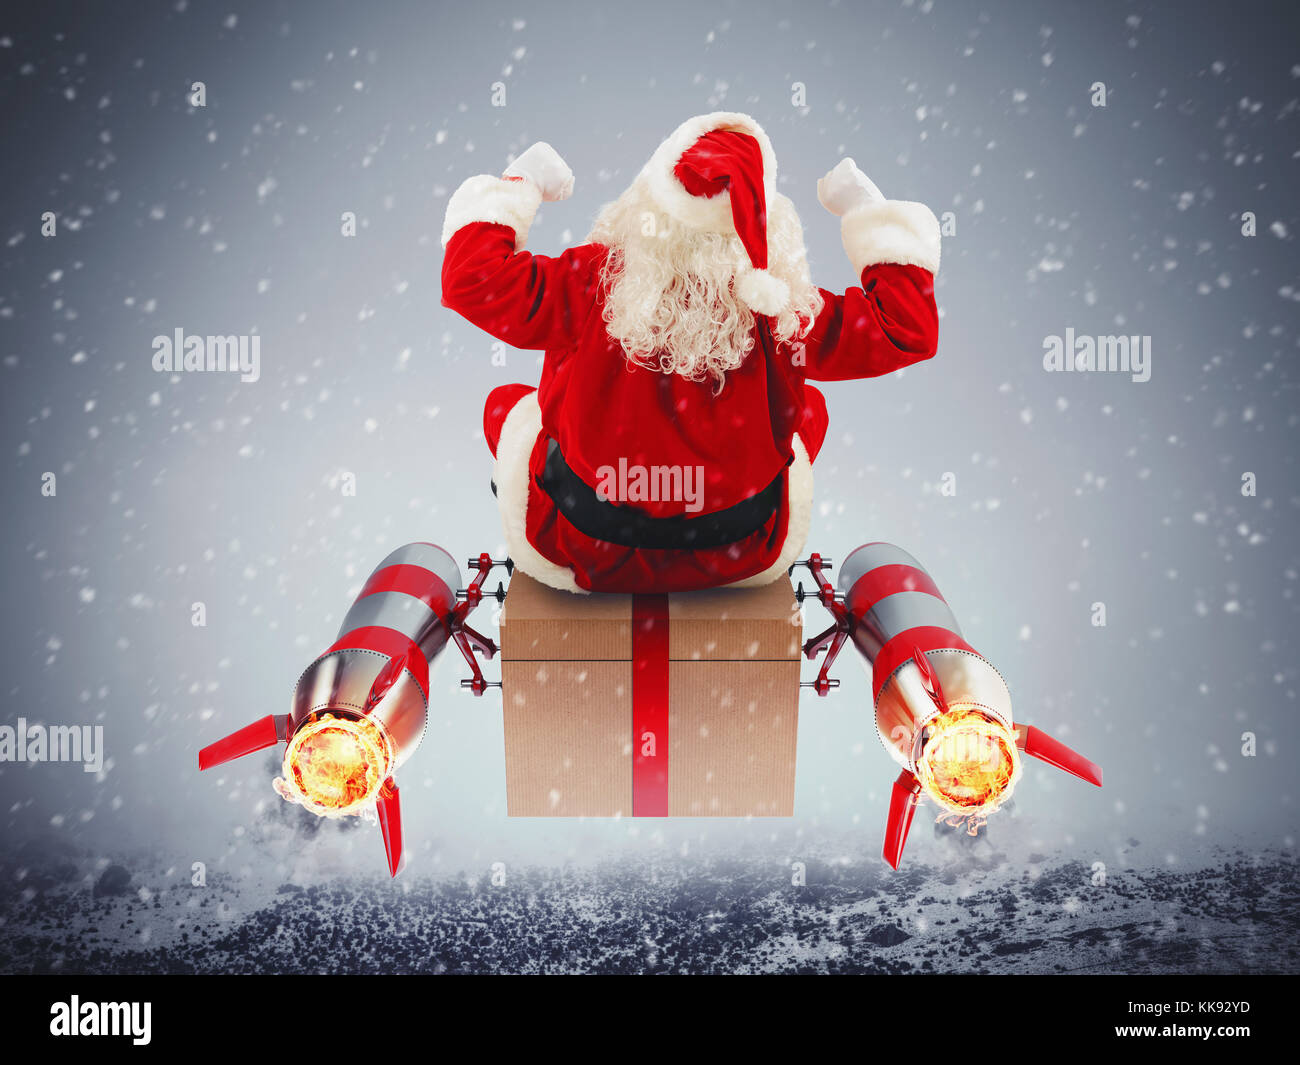 Fast delivery of Christmas gifts Stock Photo: 166771681 - Alamy